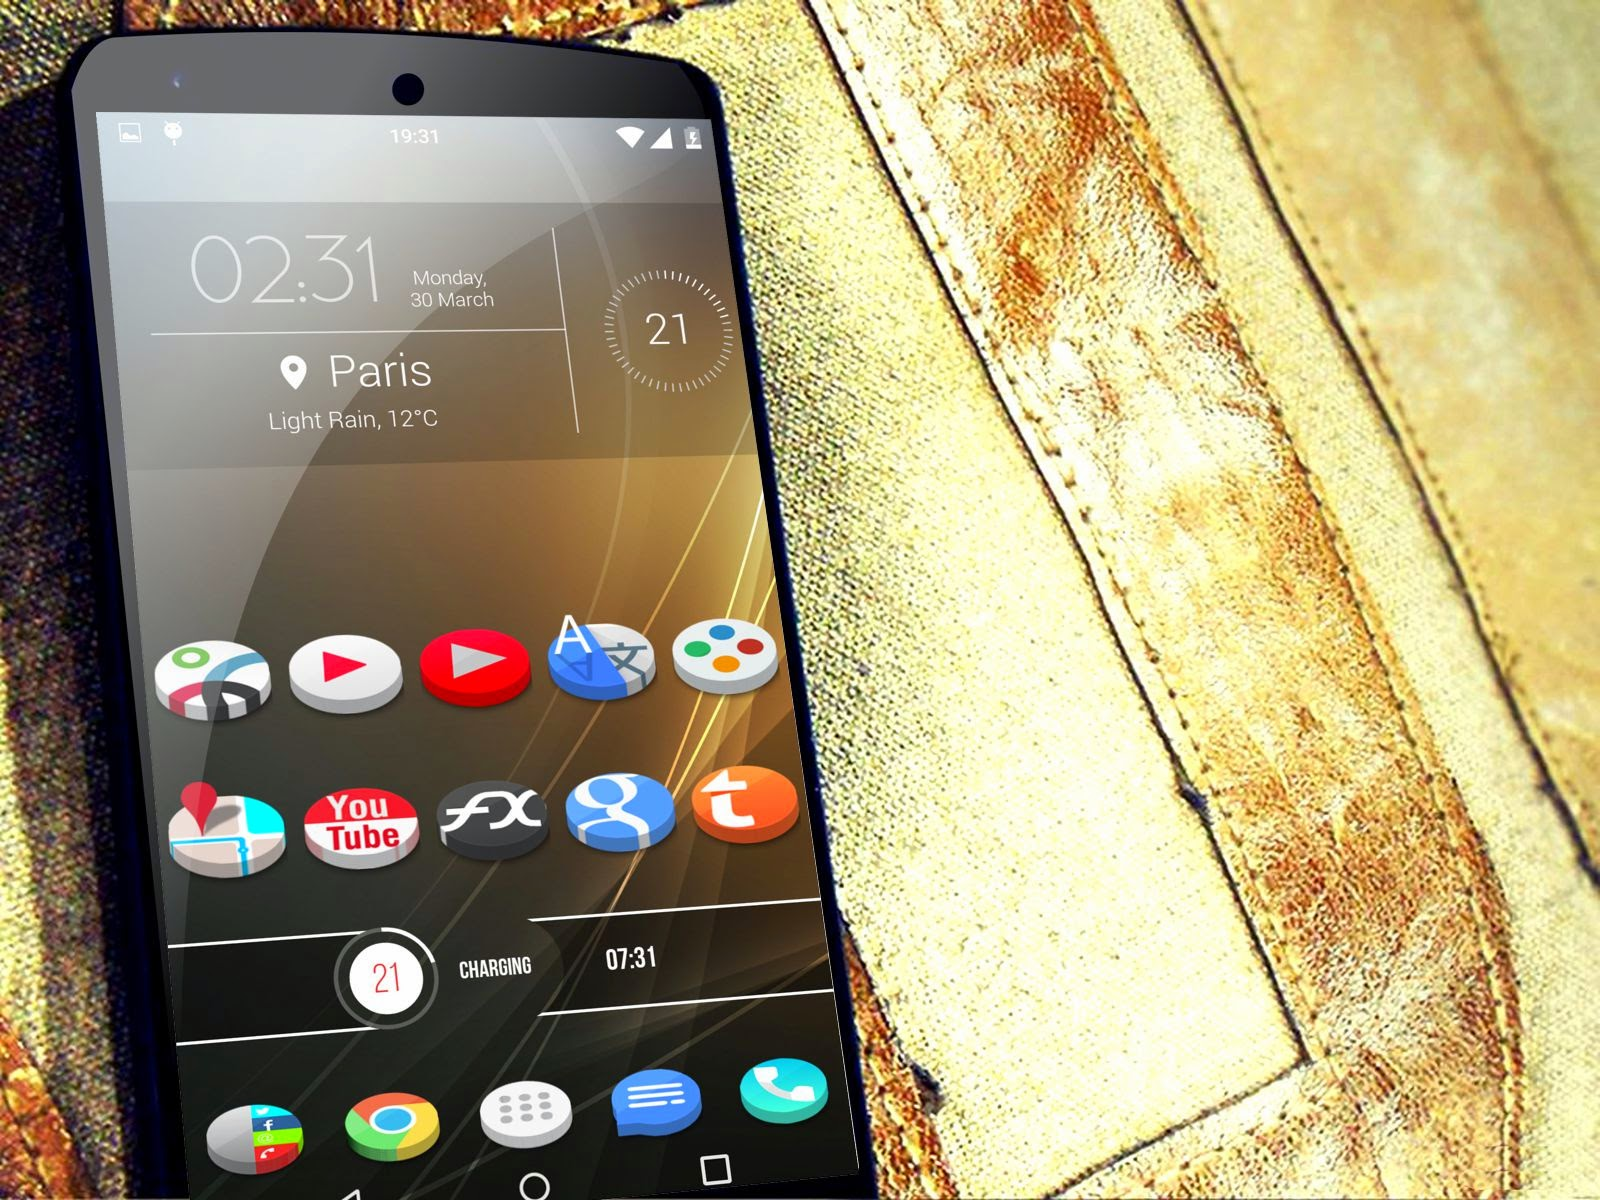 Themes For Android 3d Icon Pack To Go Launcher Action Launcher Nova